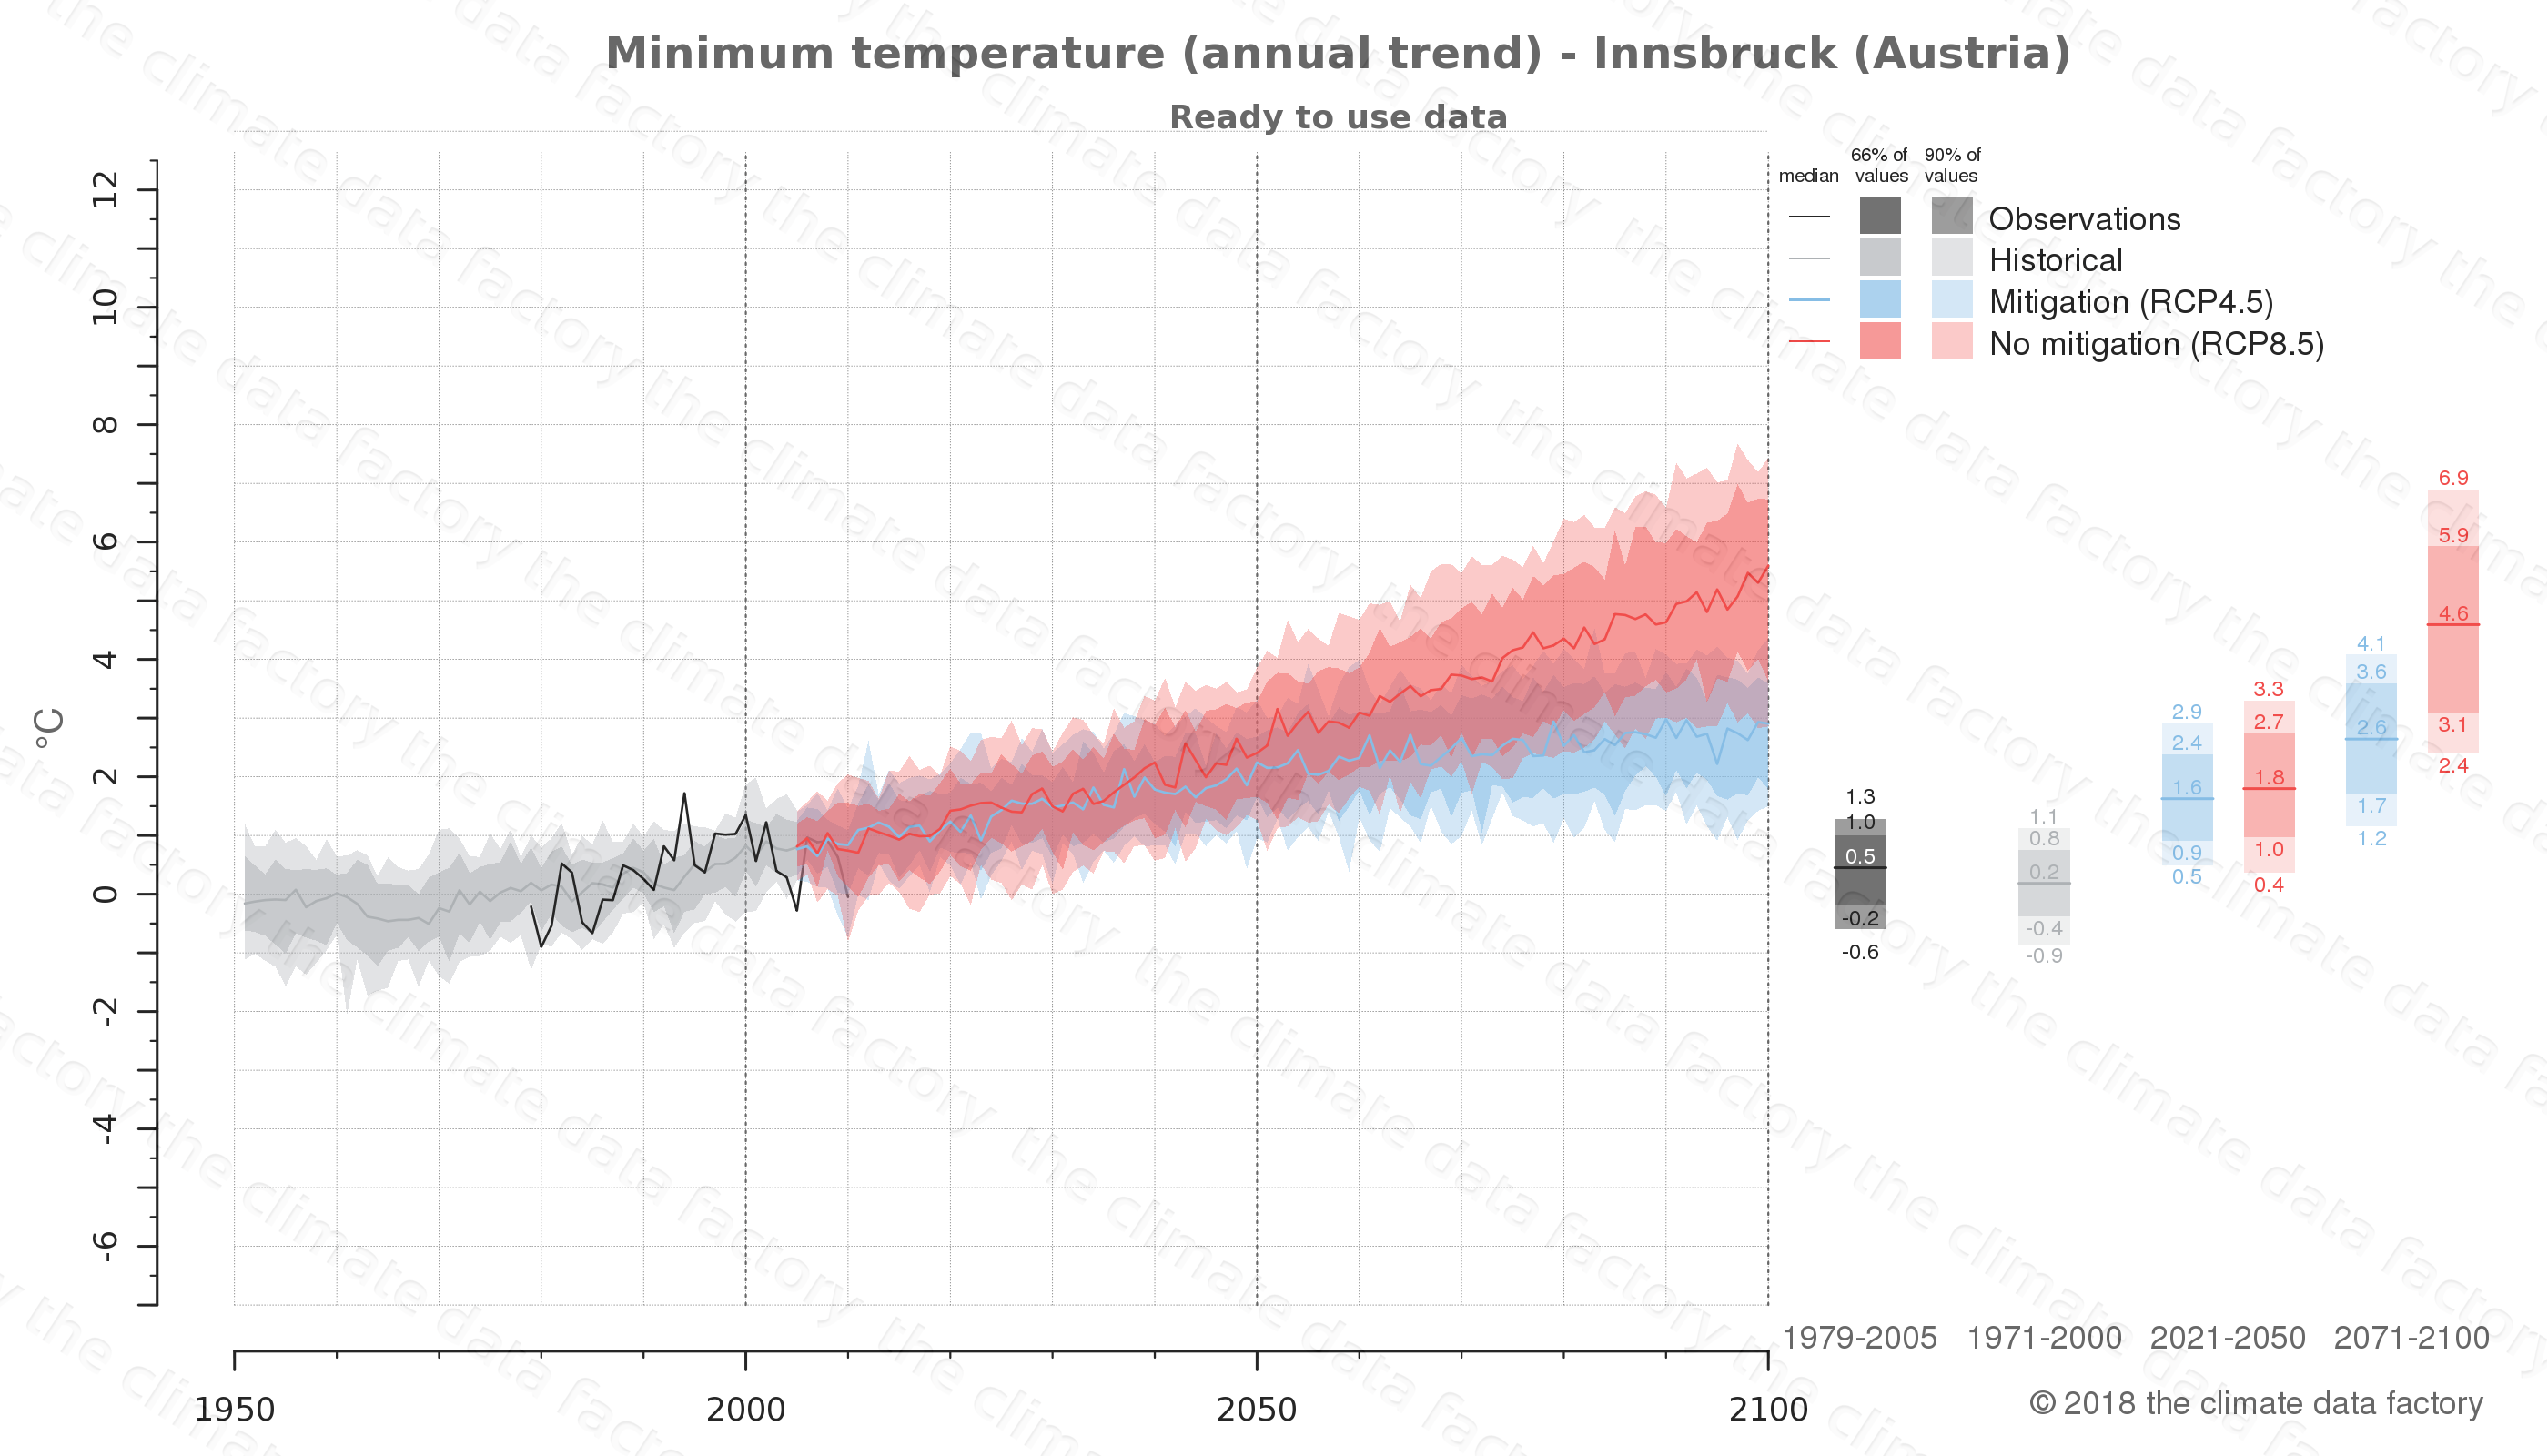 climate change data policy adaptation climate graph city data minimum-temperature innsbruck austria